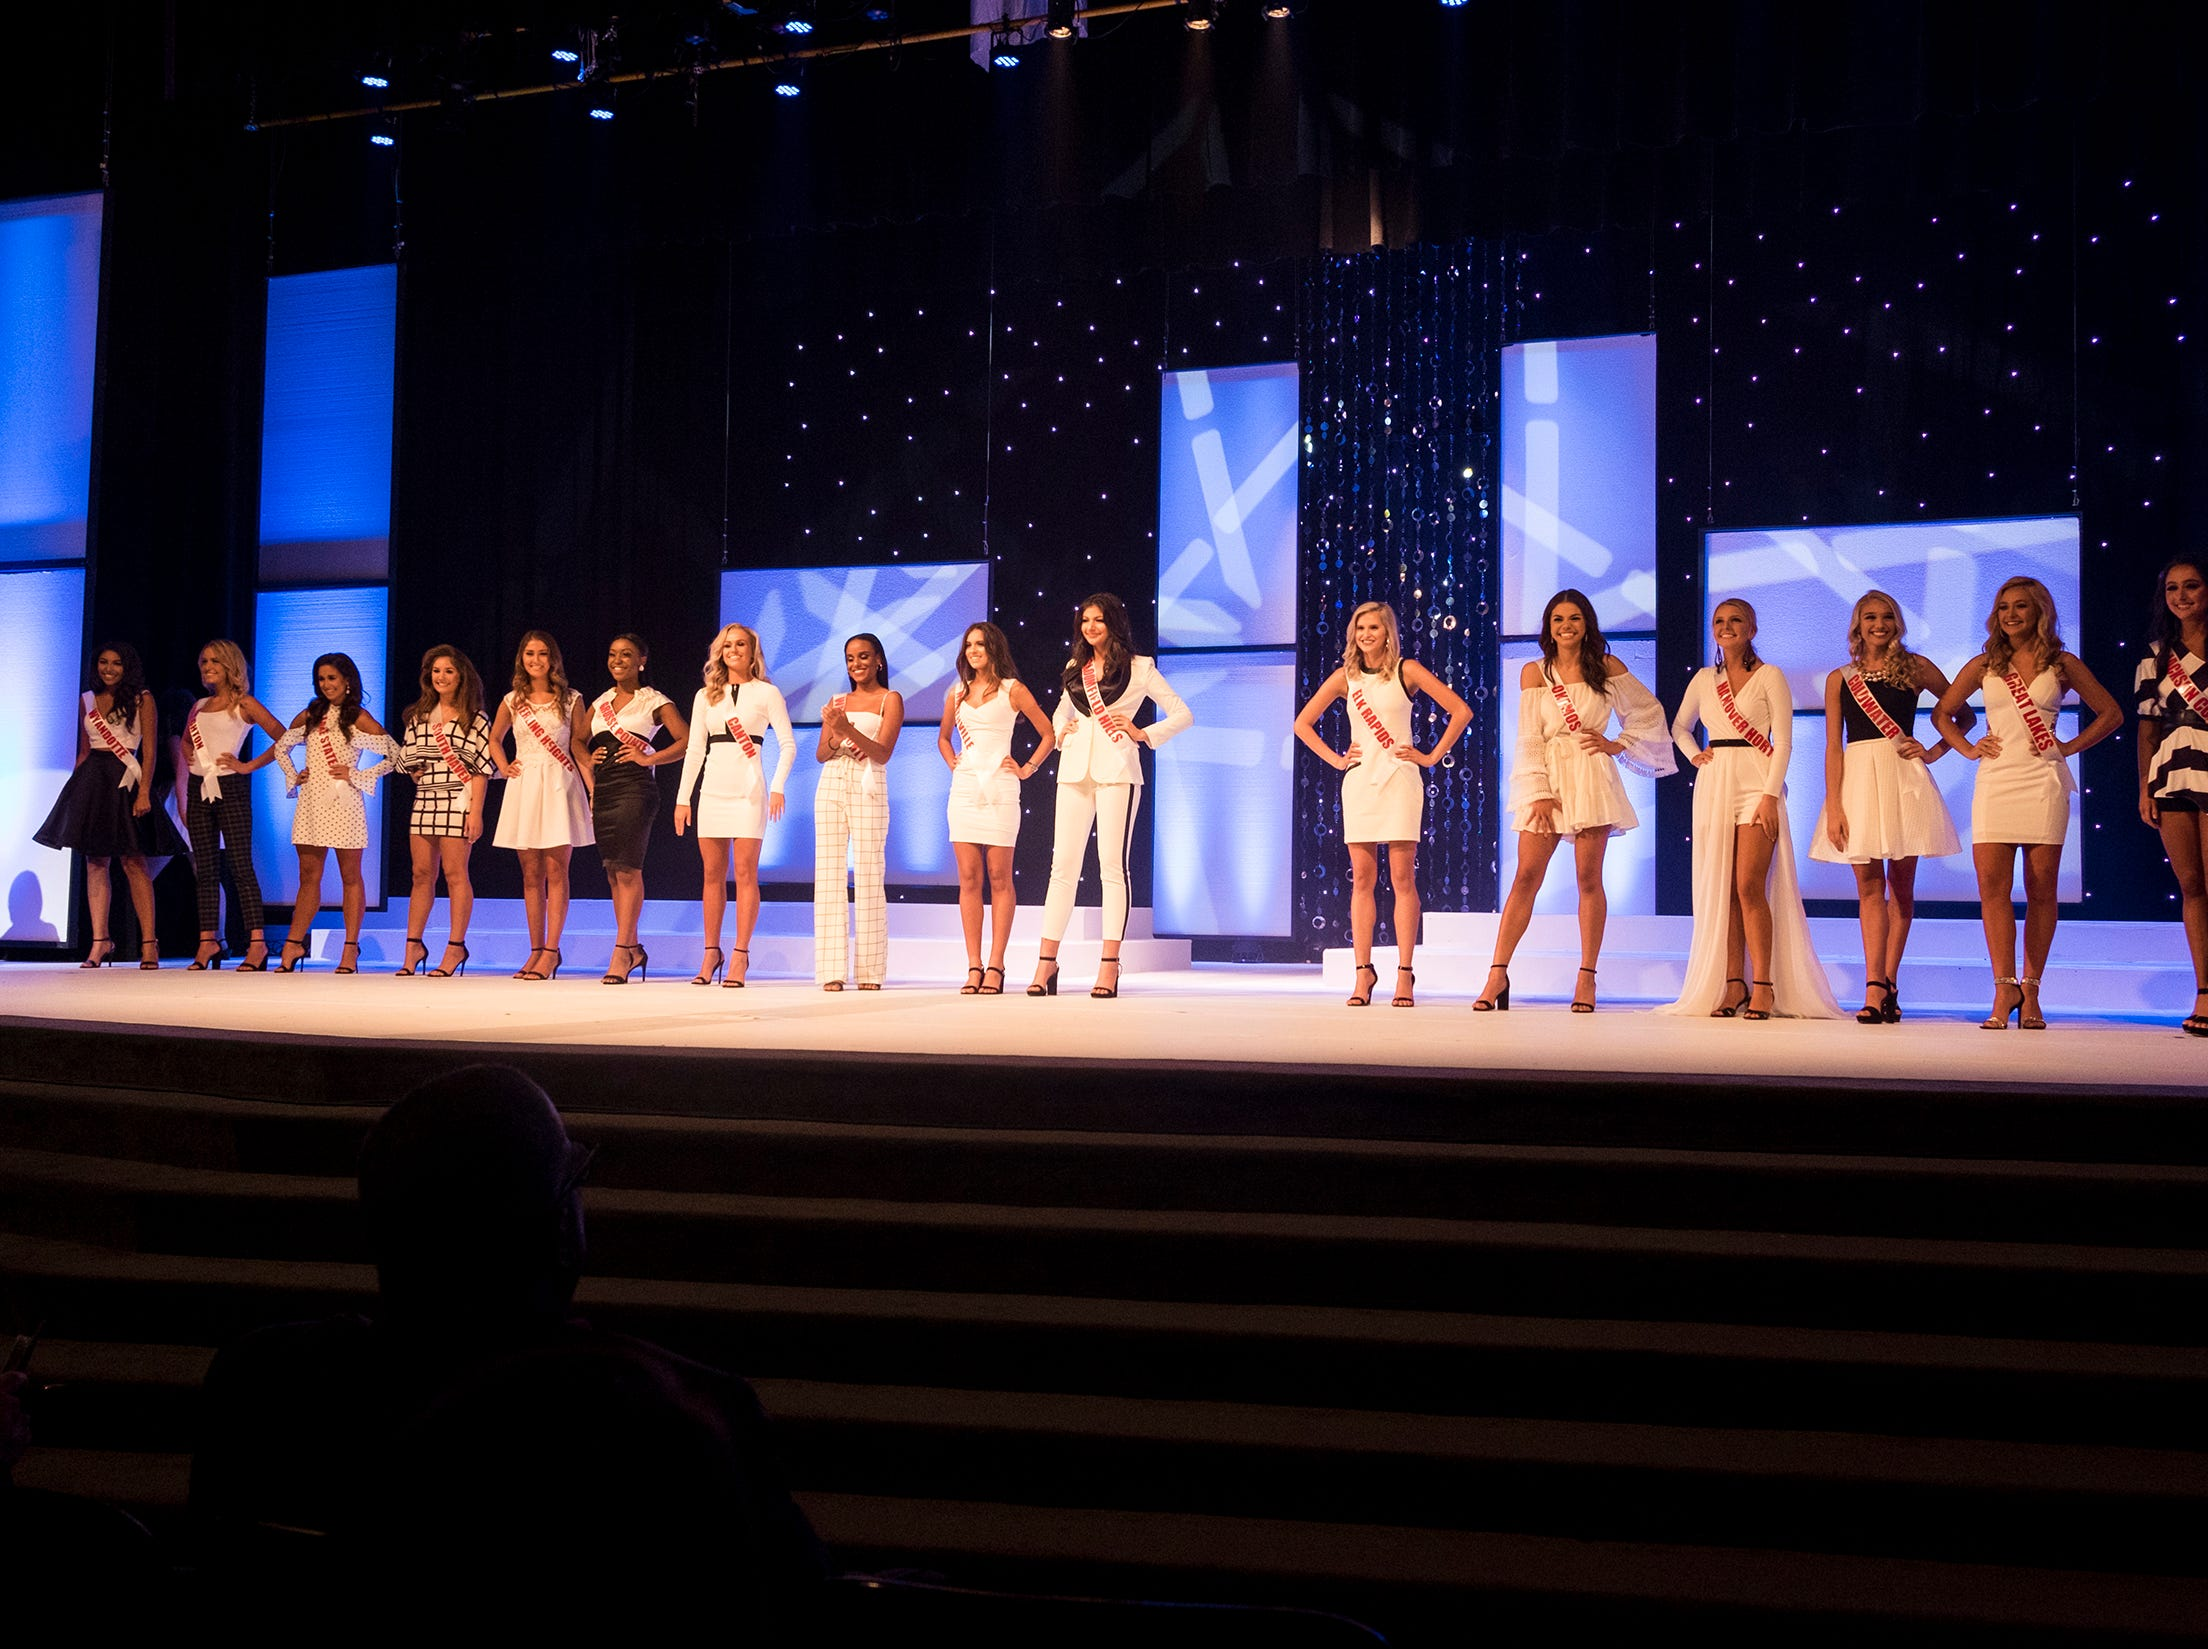 The 16 semifinalists in the Miss Michigan Teen USA pageant line the stage Saturday, Sept. 22, 2018 at McMorran Theater.